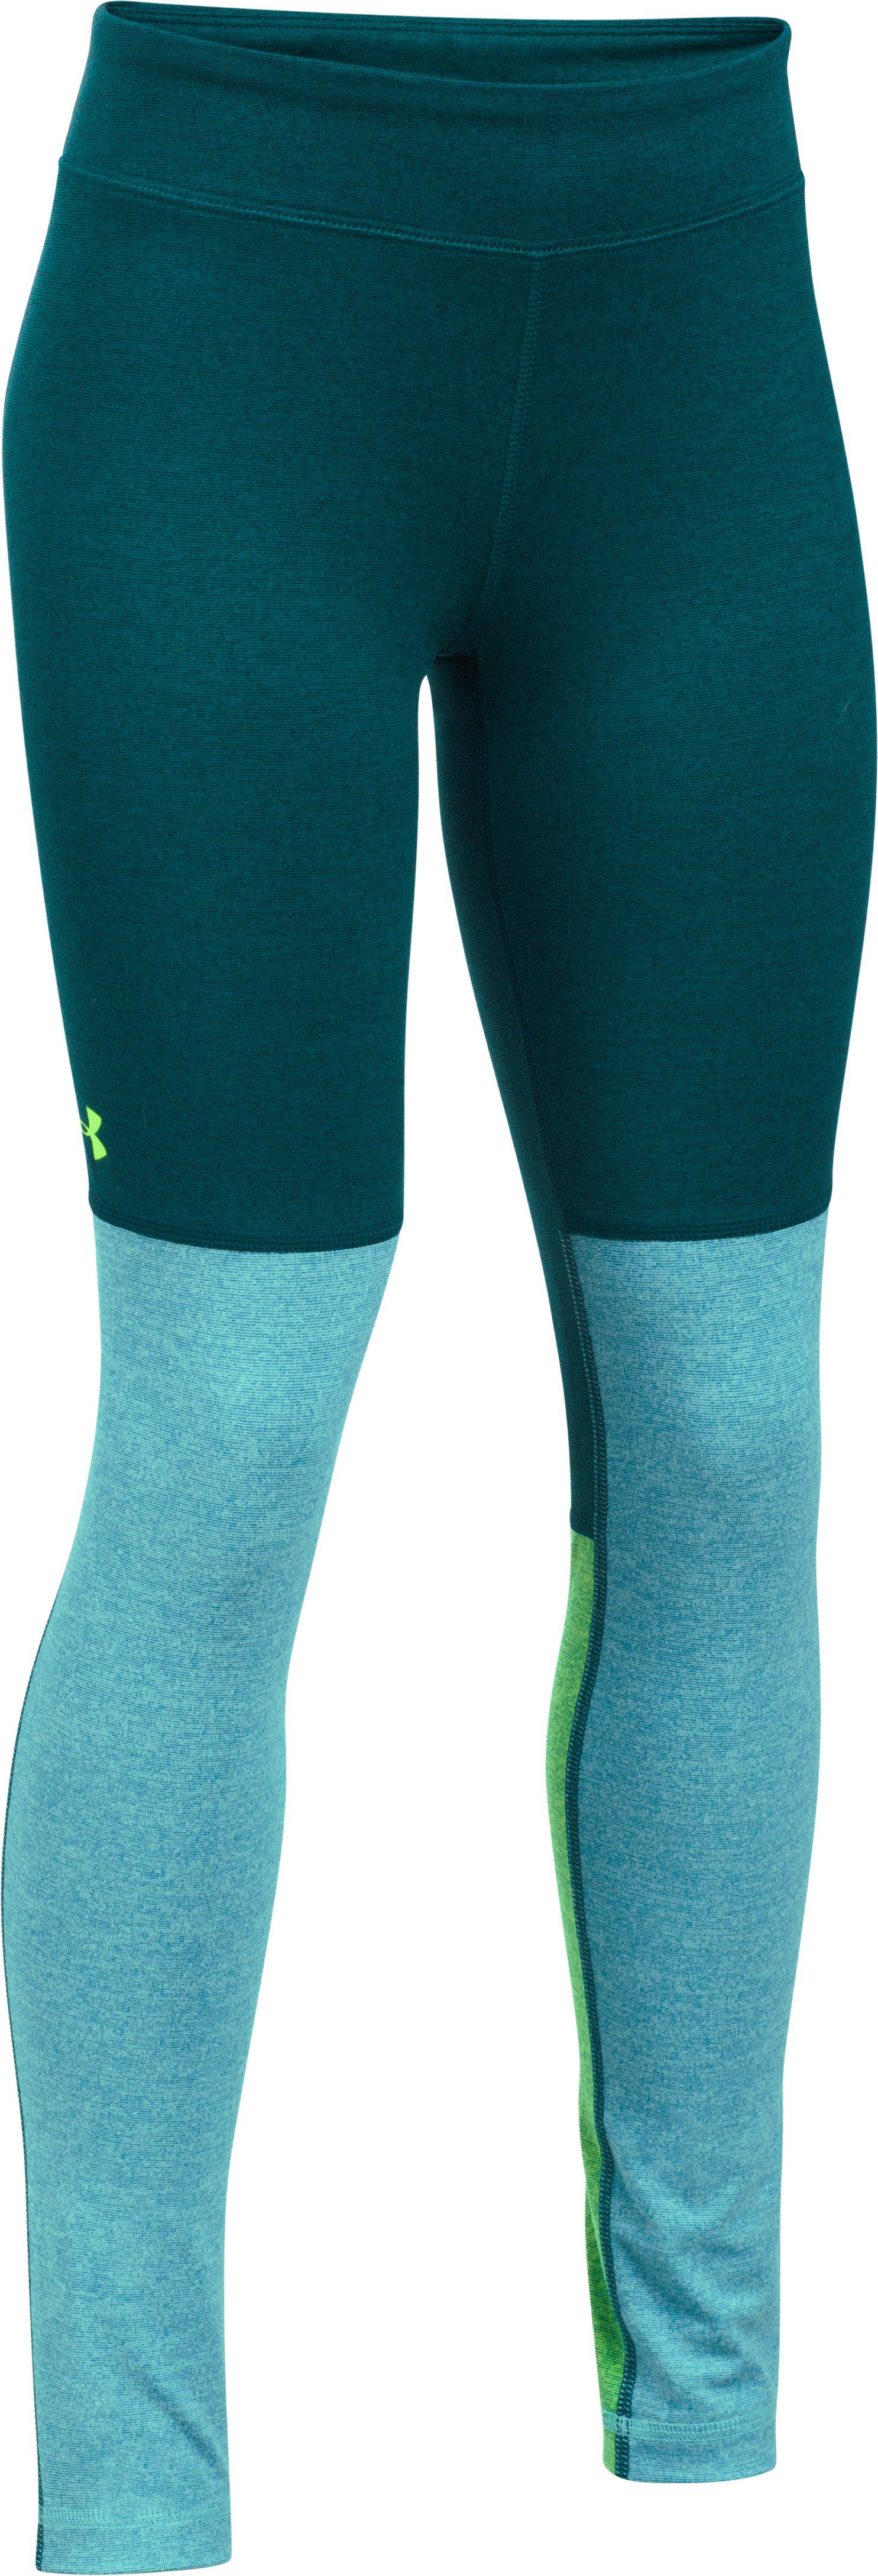 Girls' UA Elevated Training Plush Leggings, ARDEN GREEN